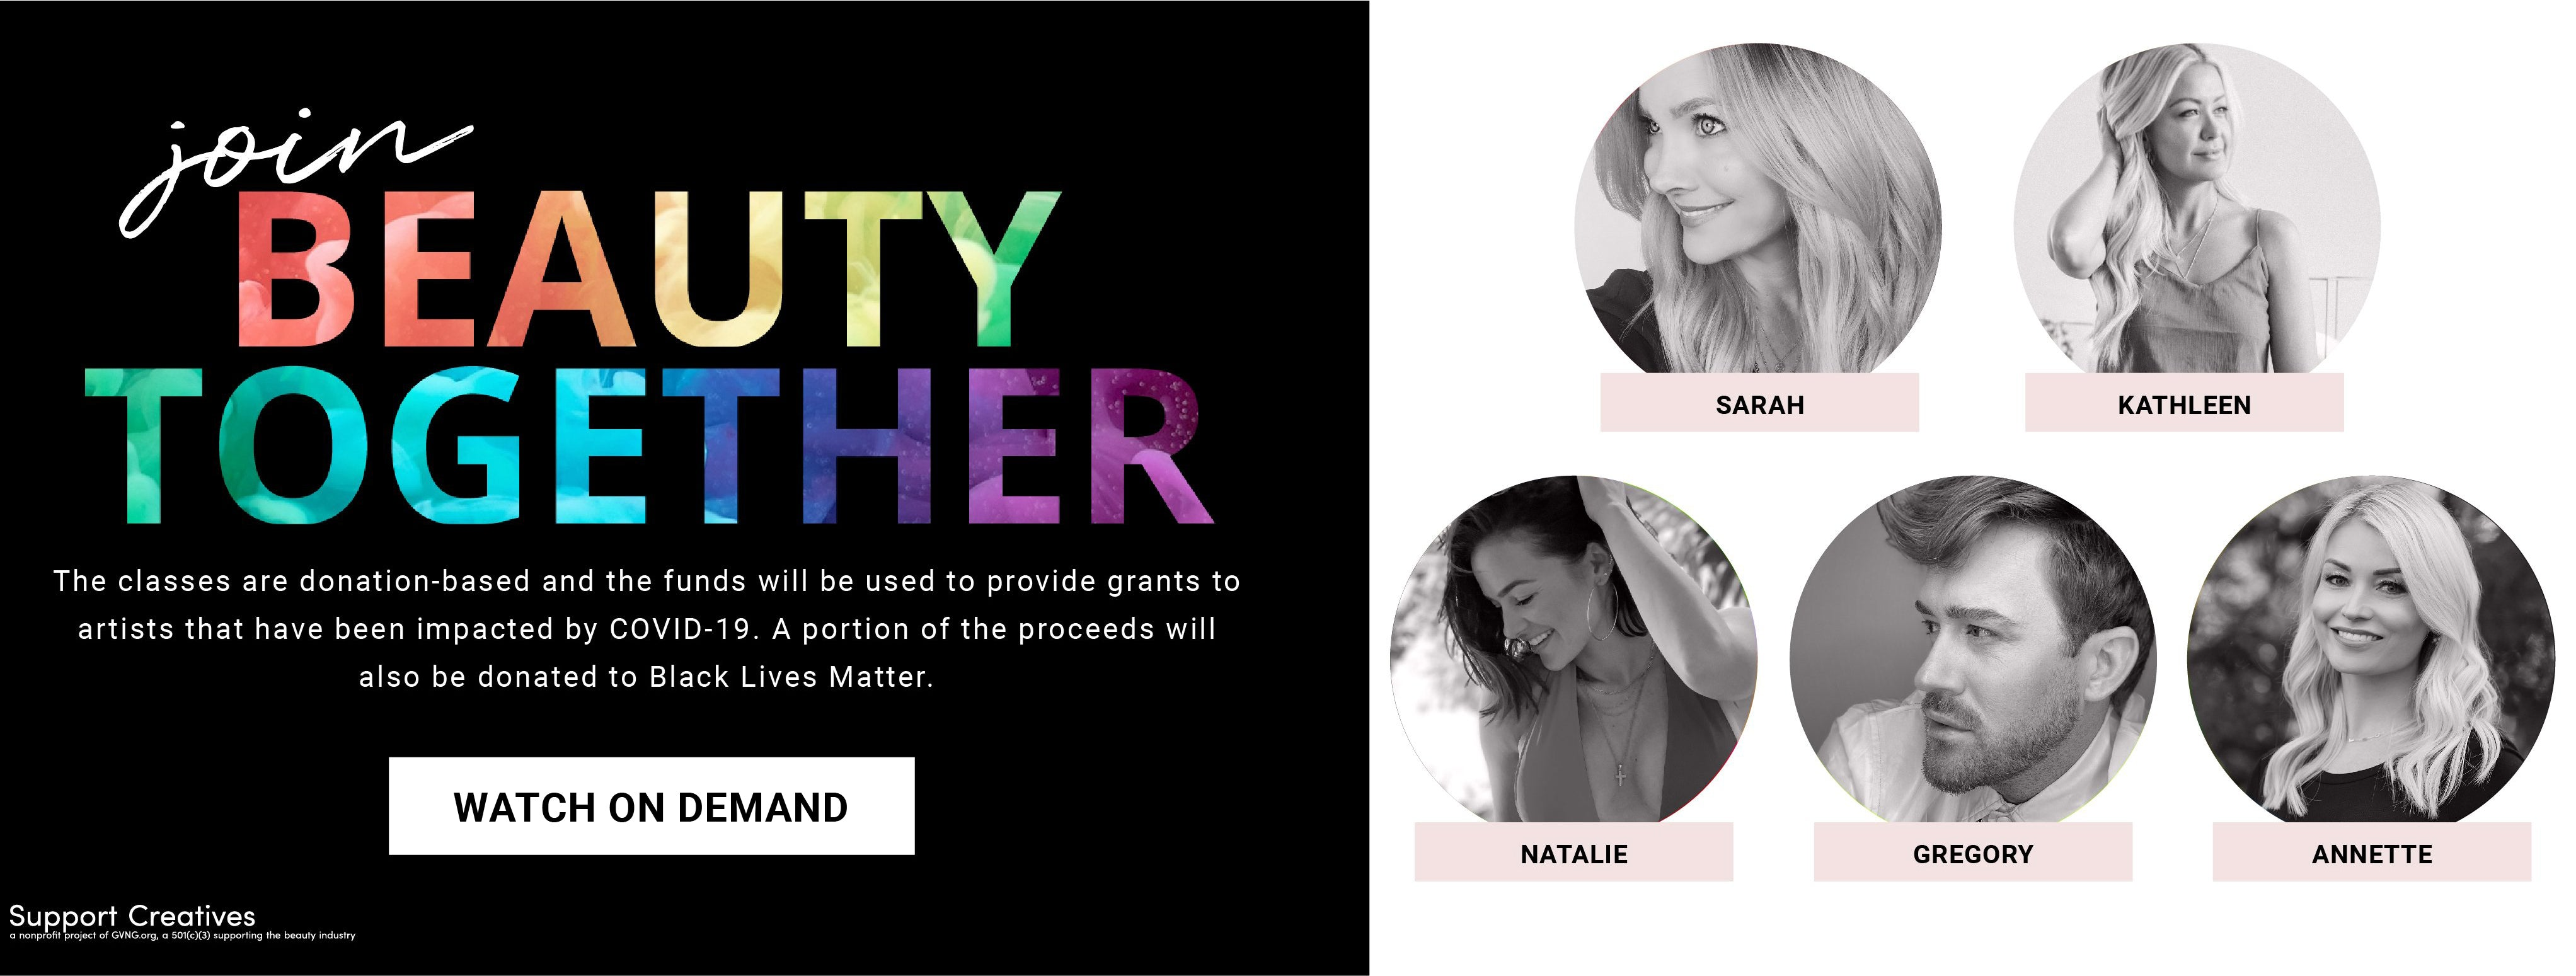 Beauty Together. Class donation are being made to Black Lives Matter.